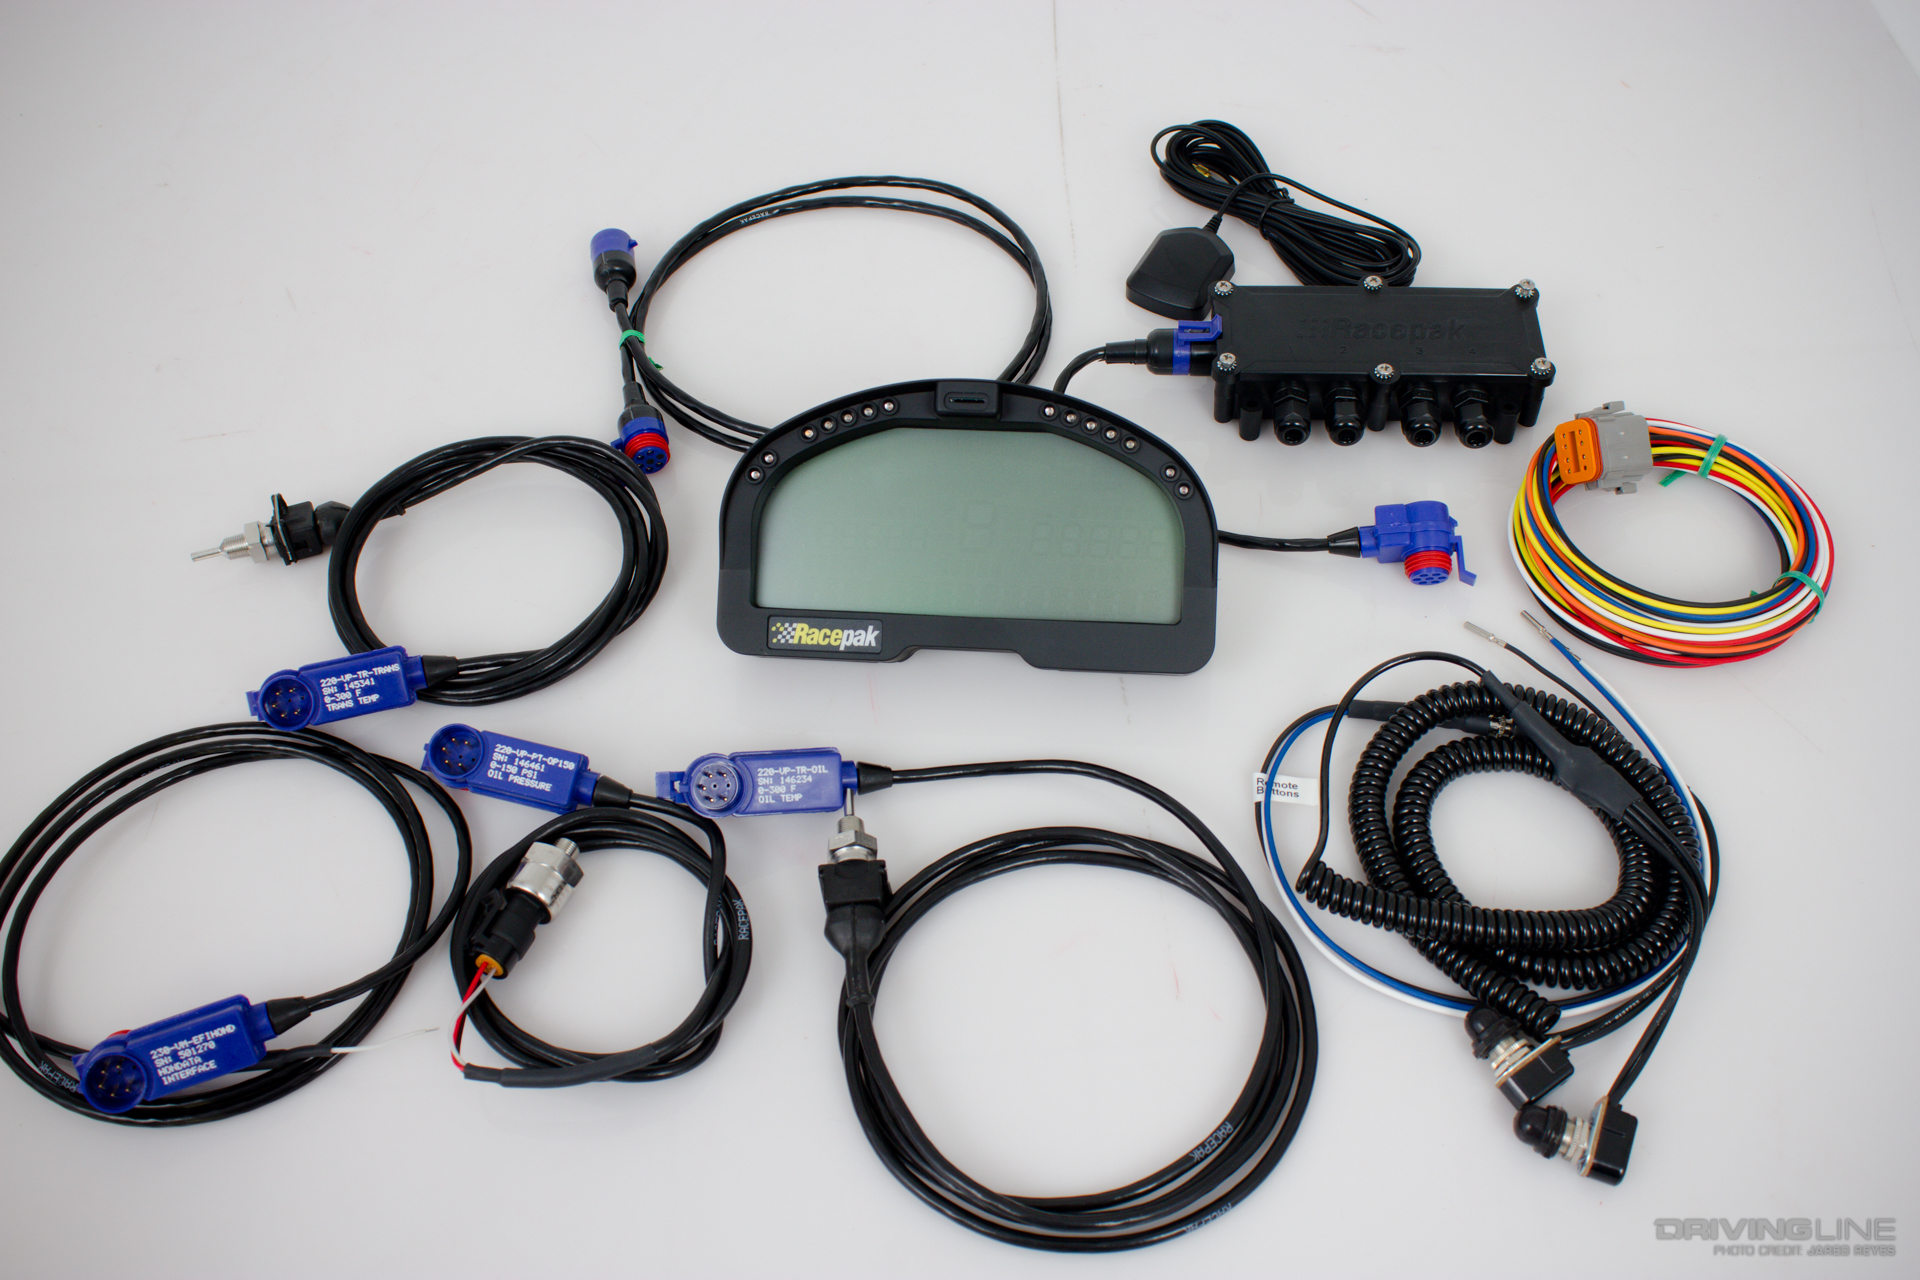 small resolution of racepak wiring diagram wiring diagrams msd 7531 wiring racepak iq3 digital dash and data logger installation